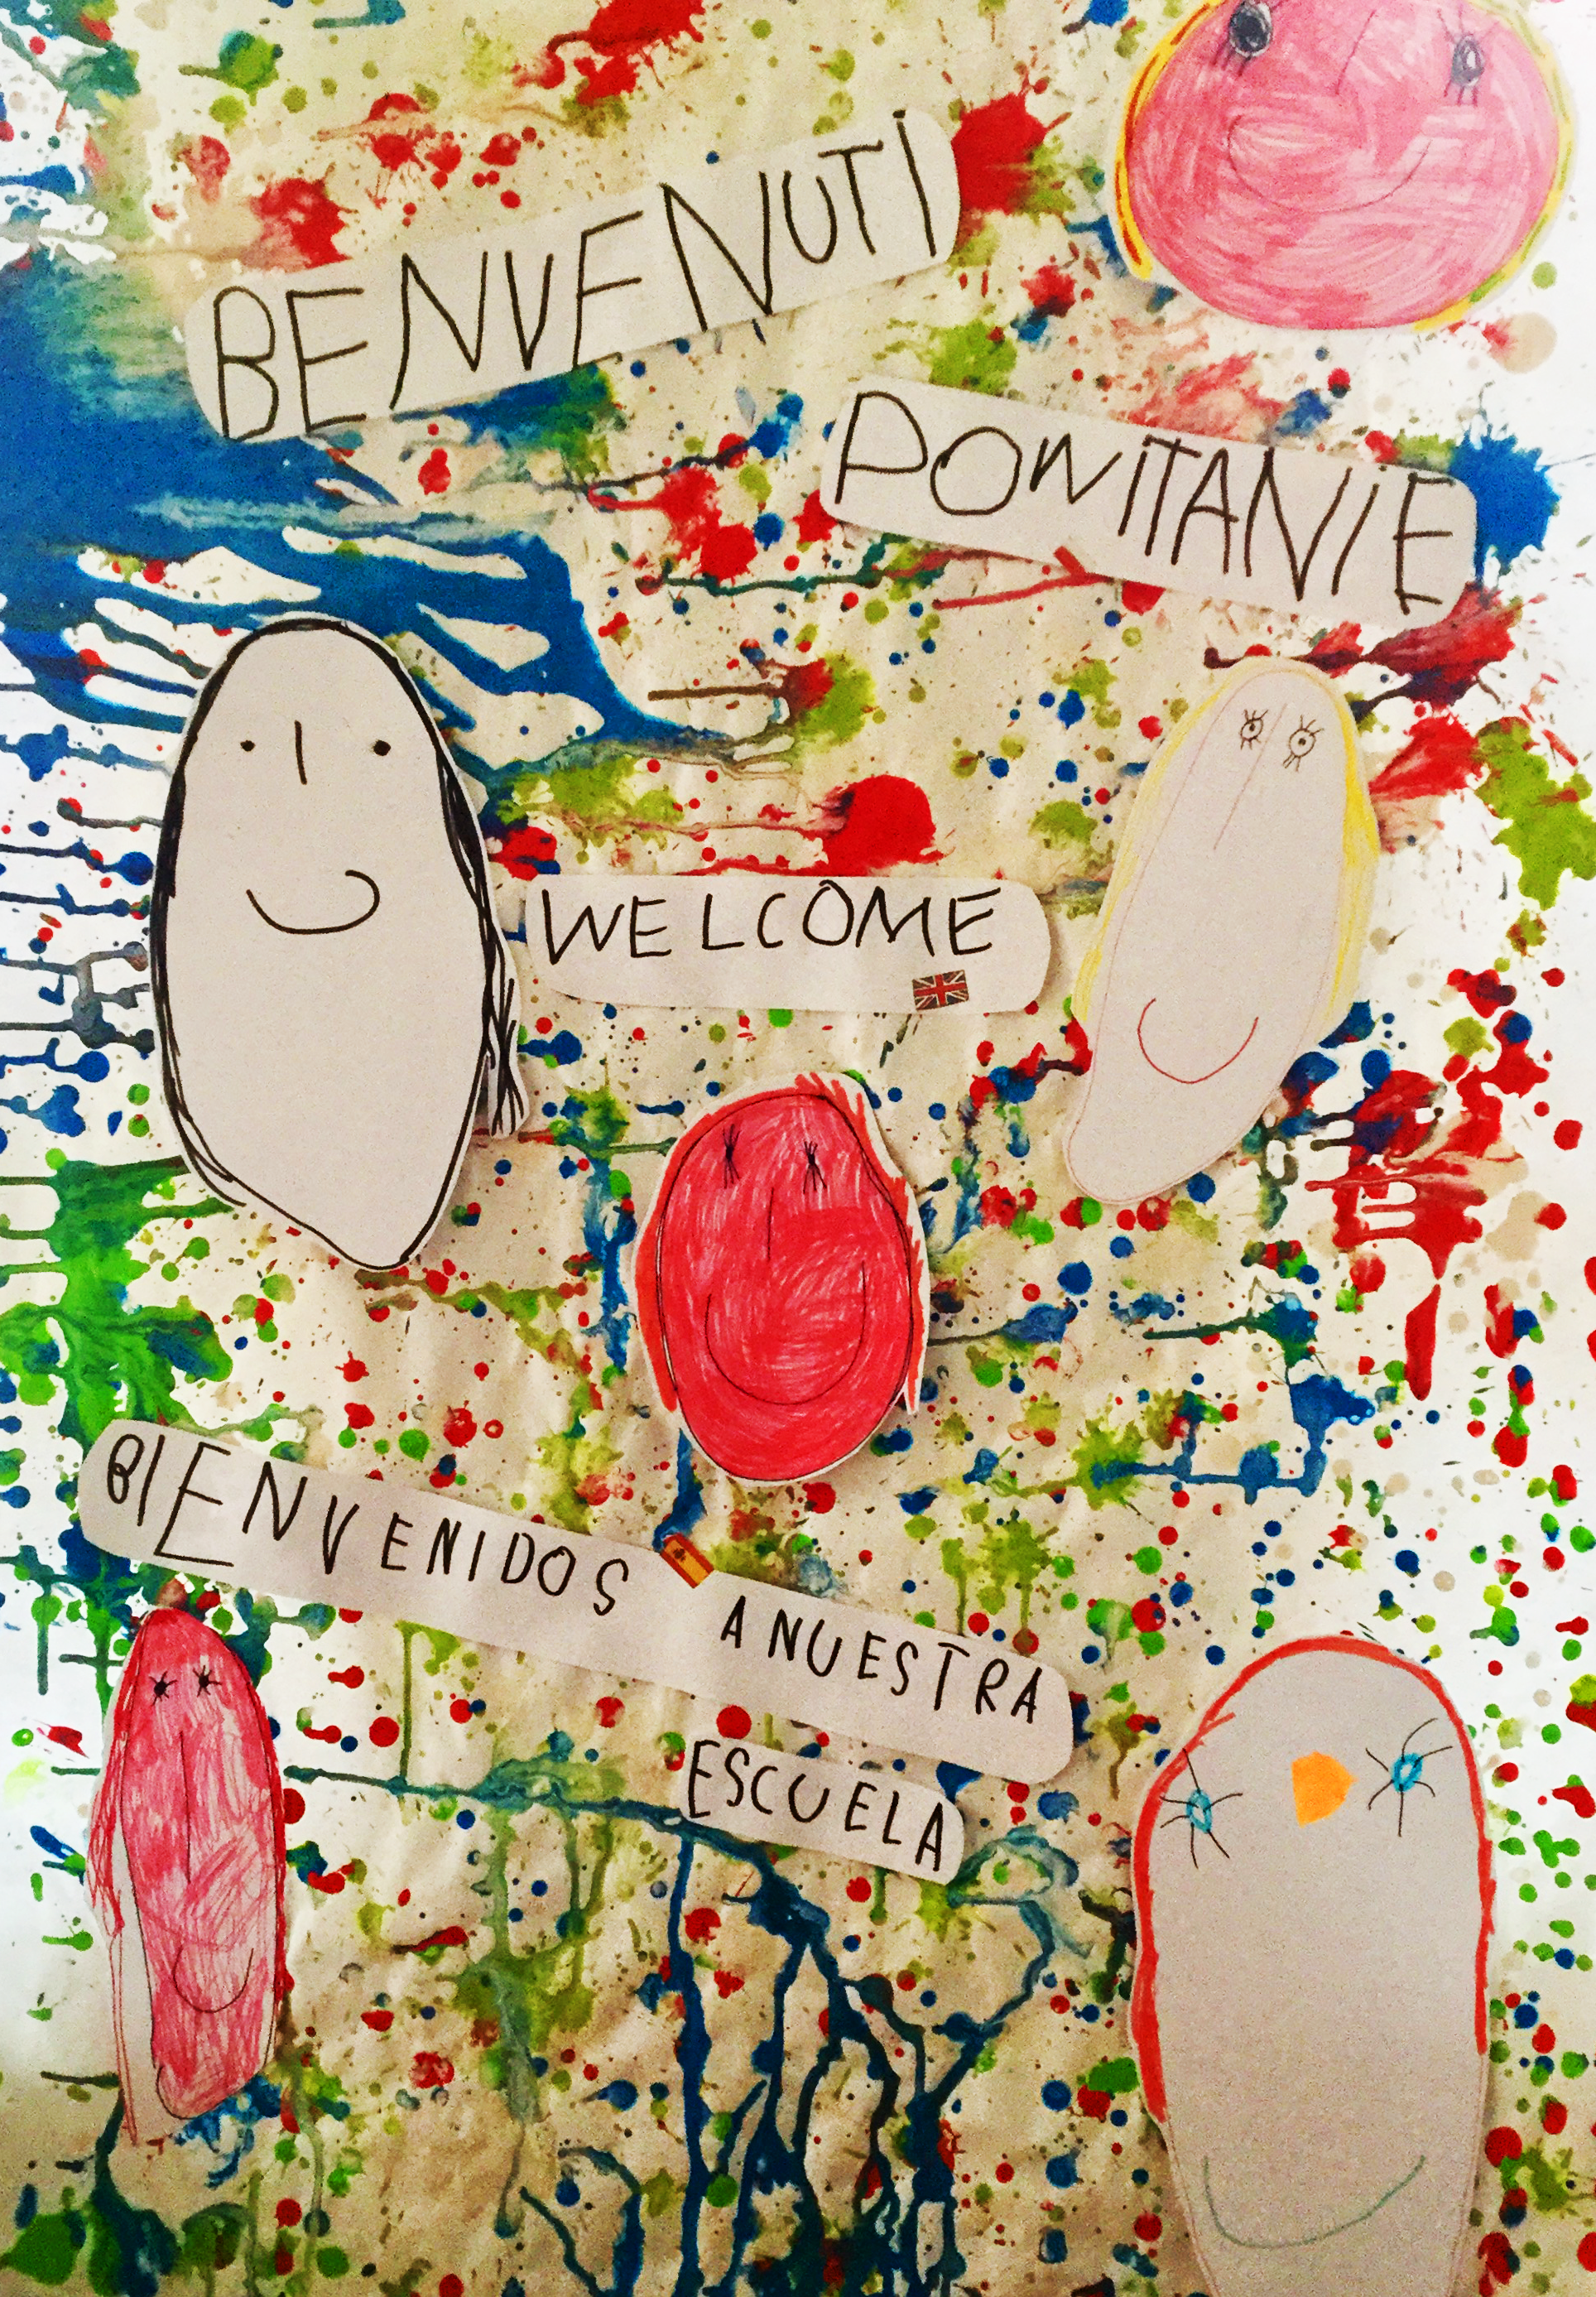 Welcome message from pupils at XXXXXXX school in Modena, Italy